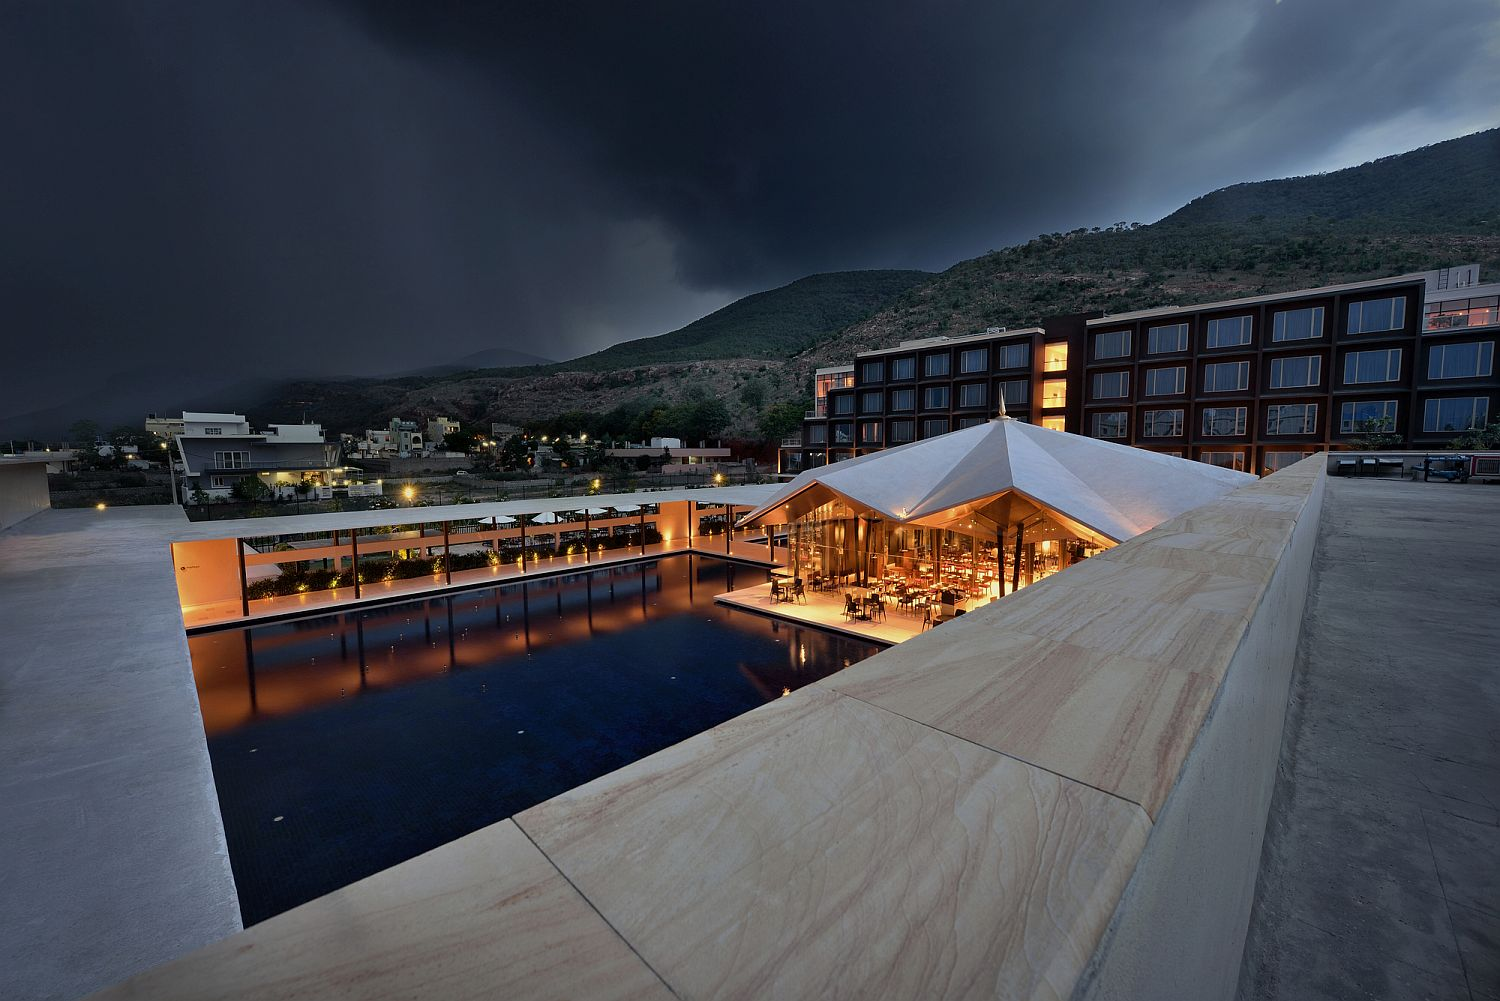 View from above of the majestic luxury hotel with the Spatagiri hills in the backdrop